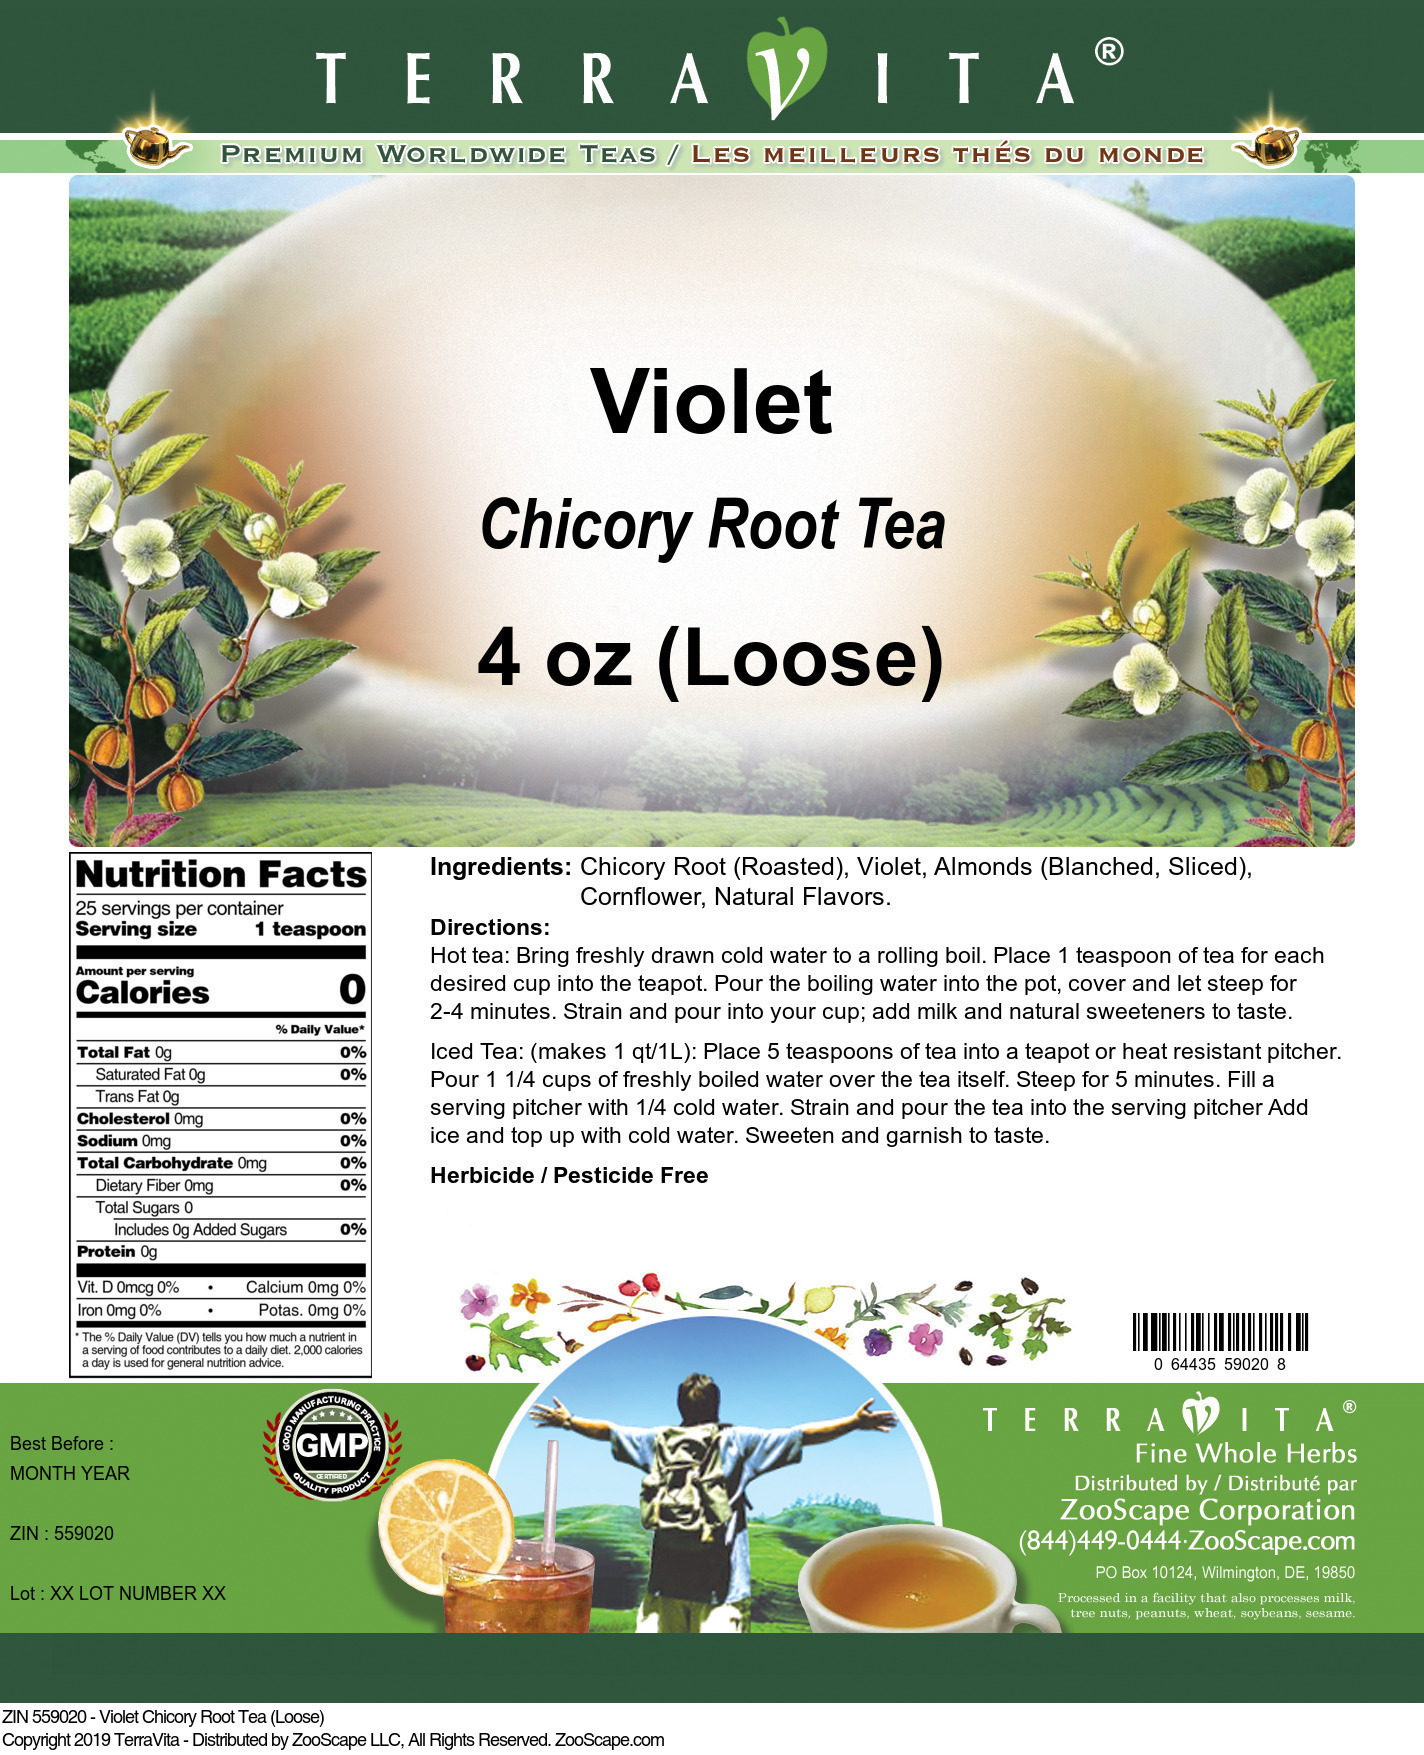 Violet Chicory Root Tea (Loose)